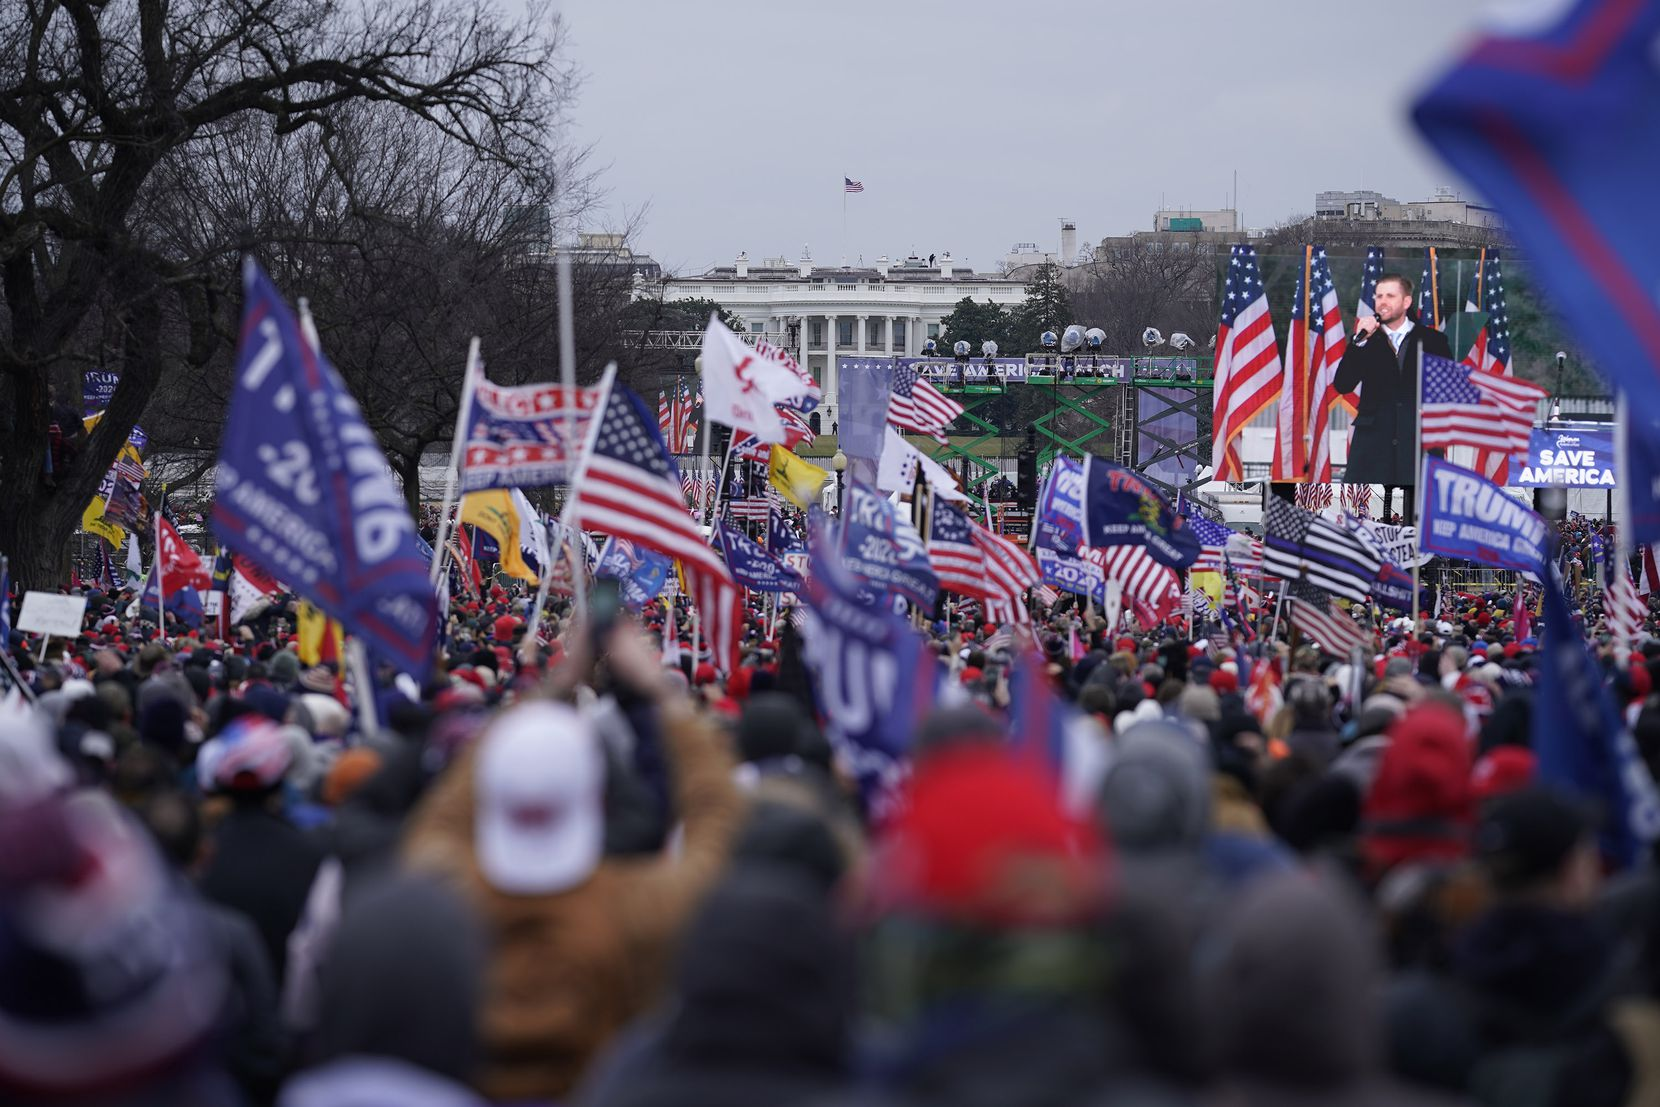 Protesters gather on the second day of pro-Trump events fueled by President Donald Trump's continued claims of election fraud in an attempt to overturn the results before Congress finalizes them in a joint session of the 117th Congress on Wednesday, Jan. 6, 2021 in Washington, D.C.